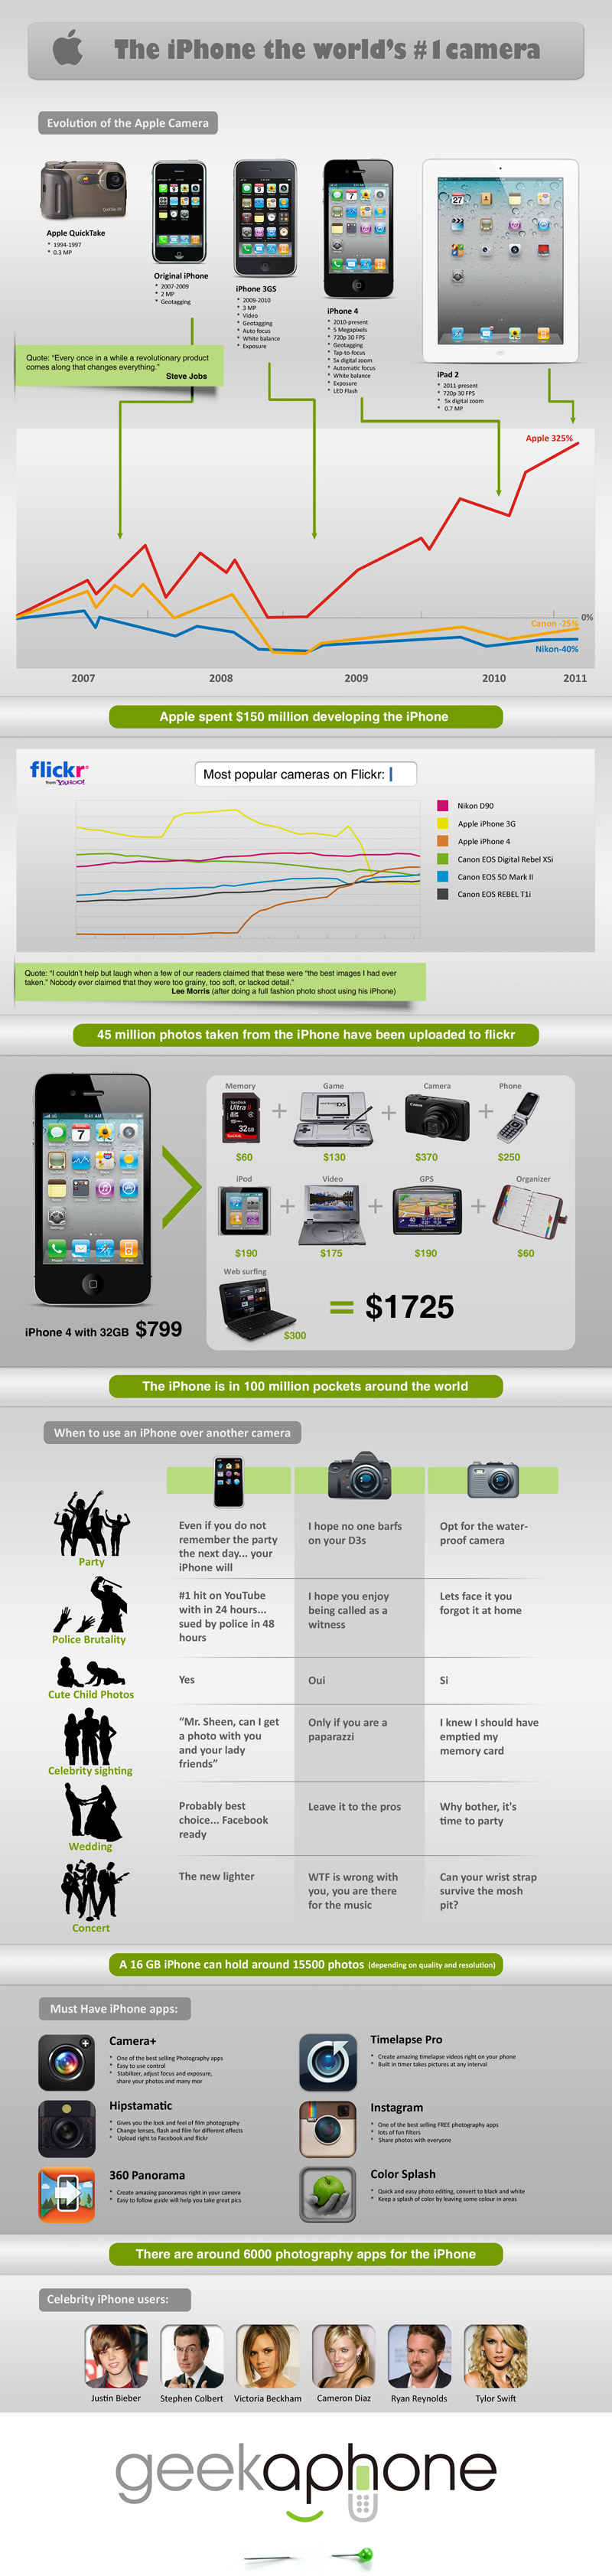 iPhone Infographic 800px How The iPhone Became The Worlds Most Popular Camera [Infographic]